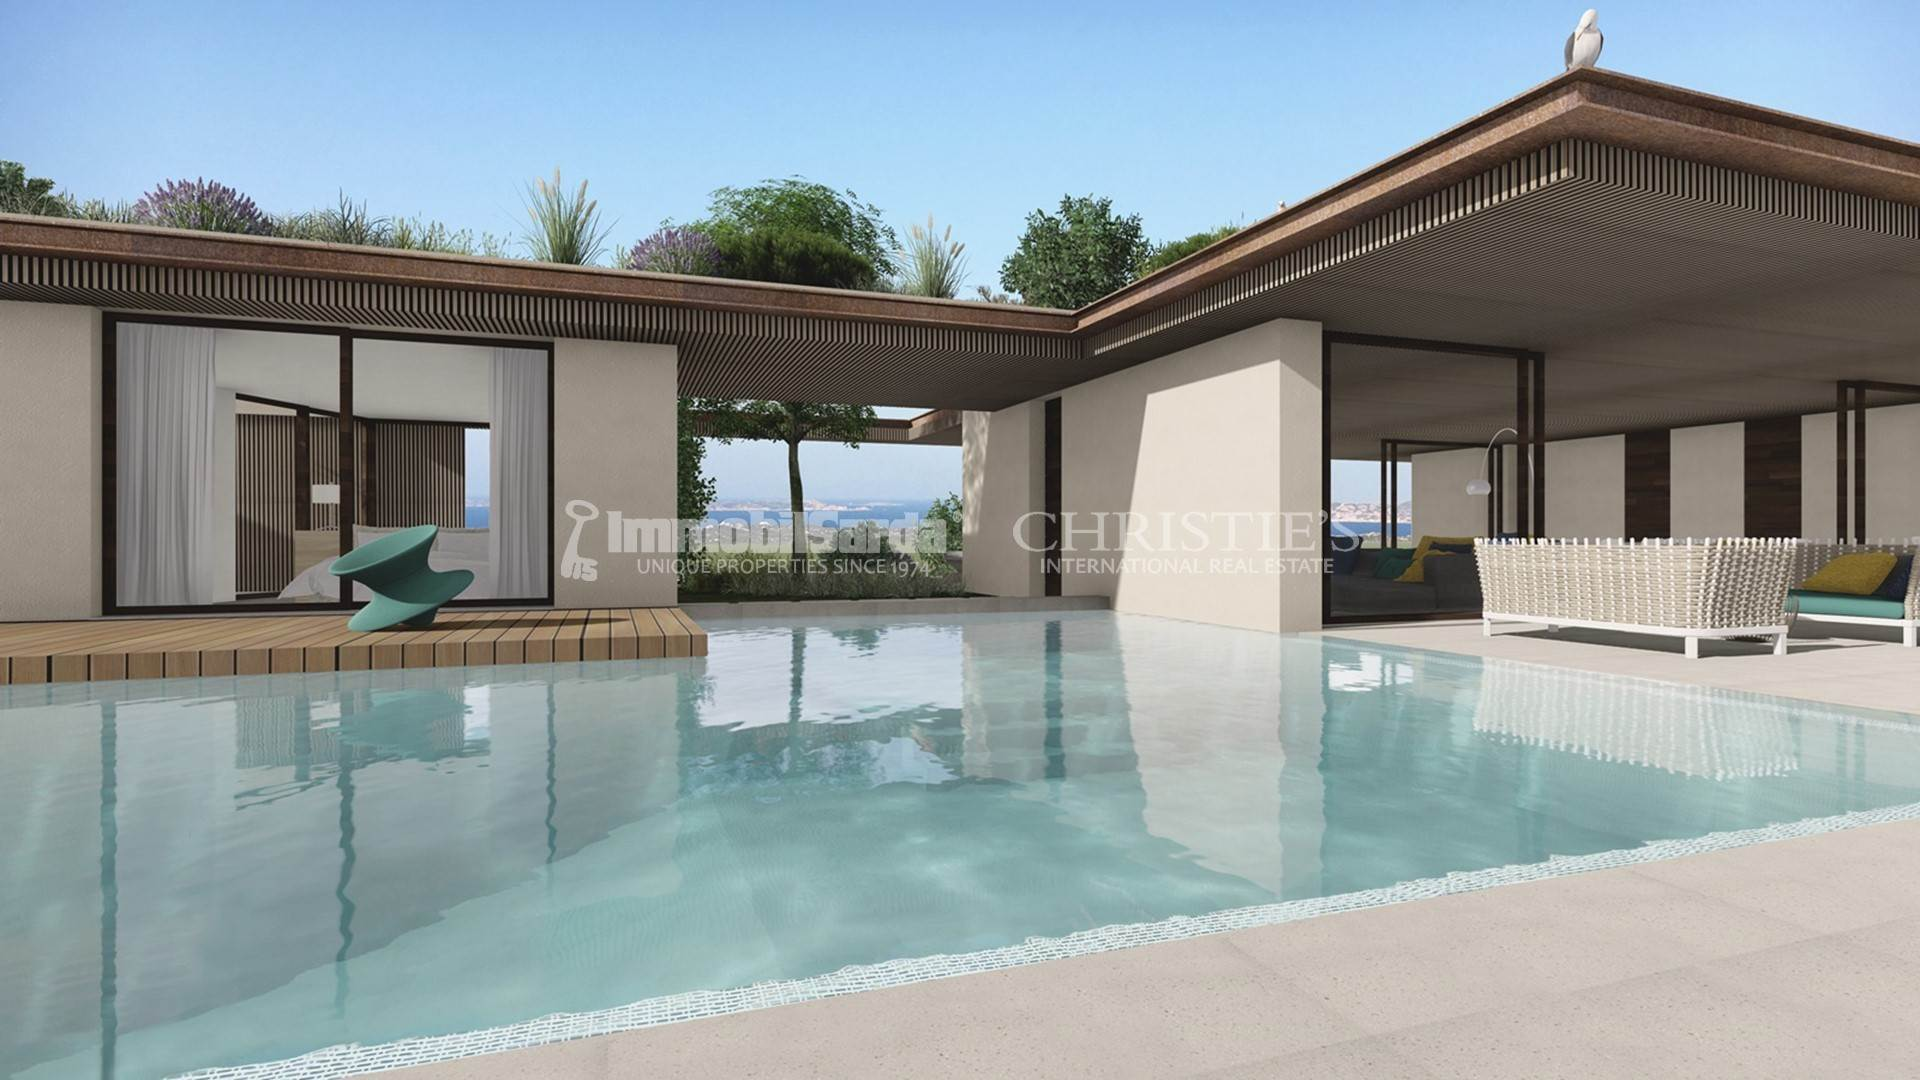 Villa/Townhouse for Sale at Newly Built Villa - Santa Teresa Hills Santa Teresa Di Gallura, Olbia Tempio,07028 Italy